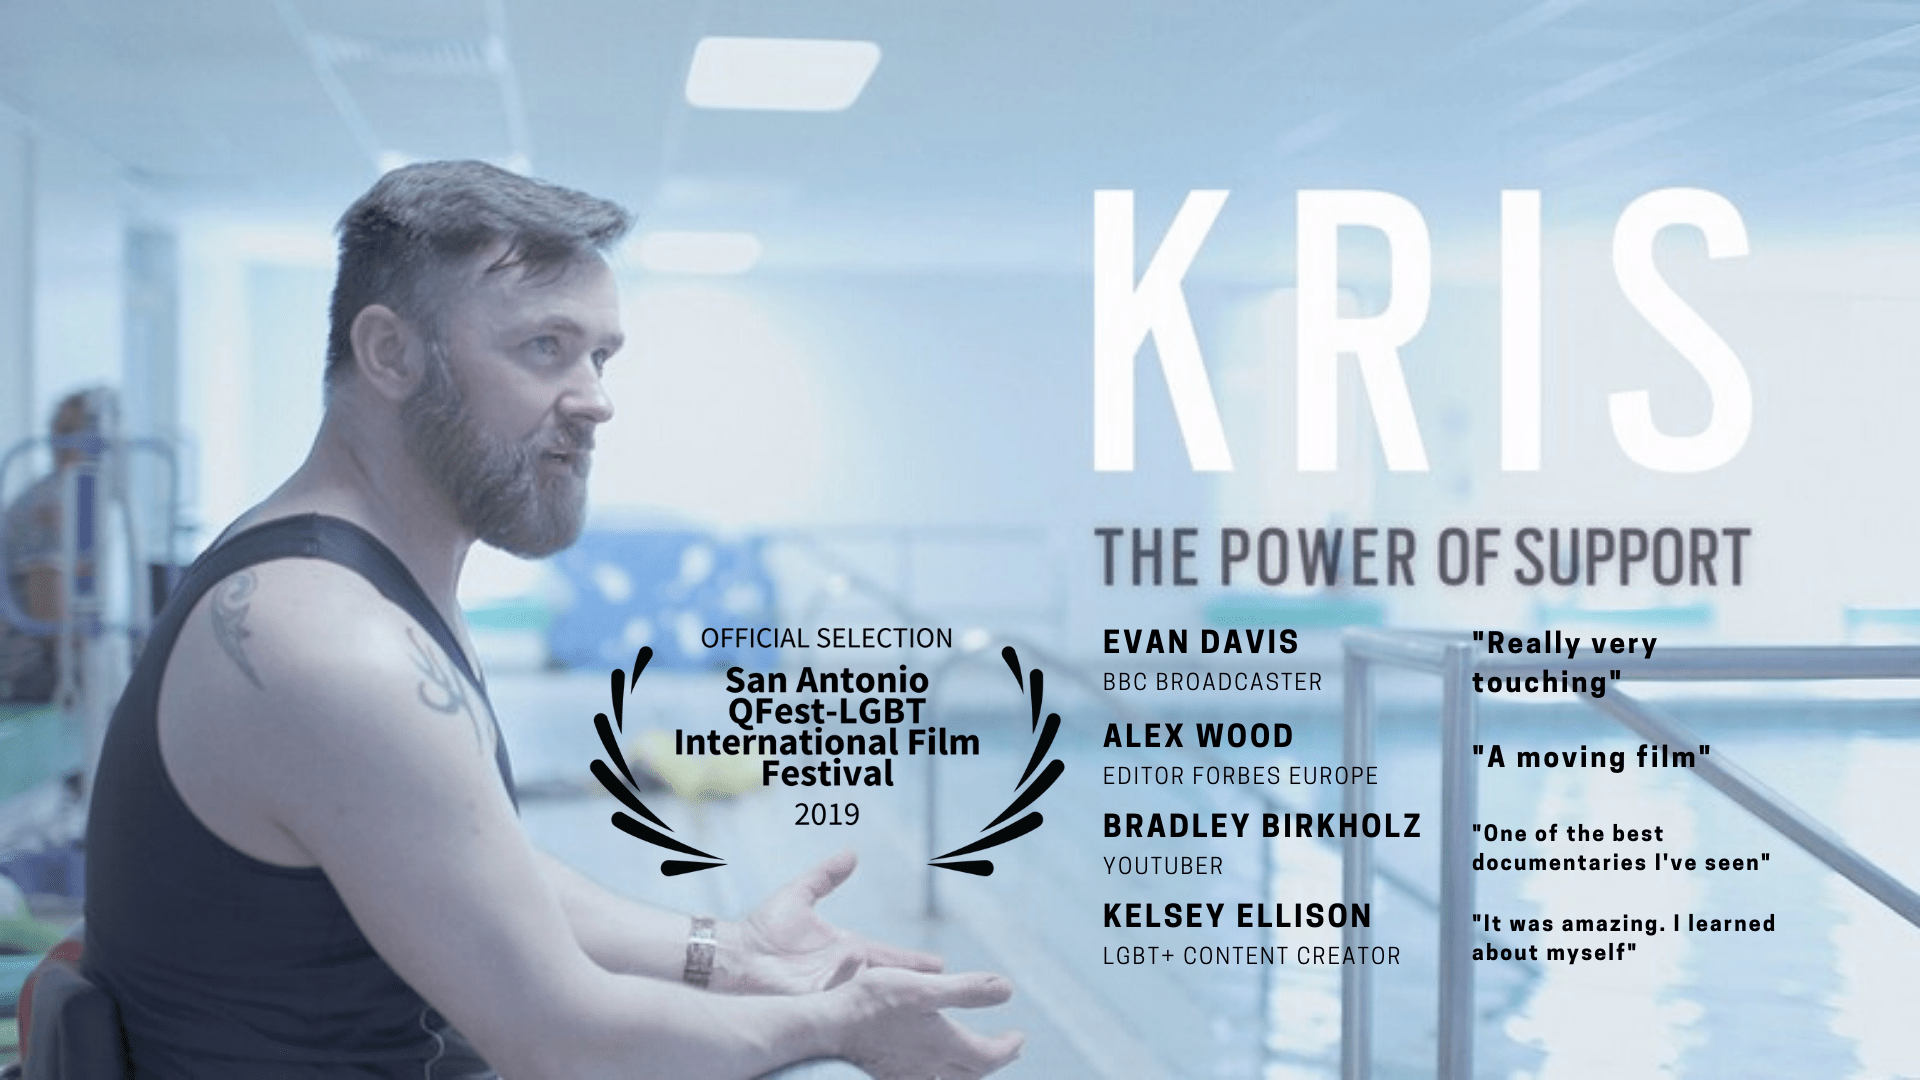 Kris The Power Of Pupport Poster with Evan Davis comments Really Very Moving